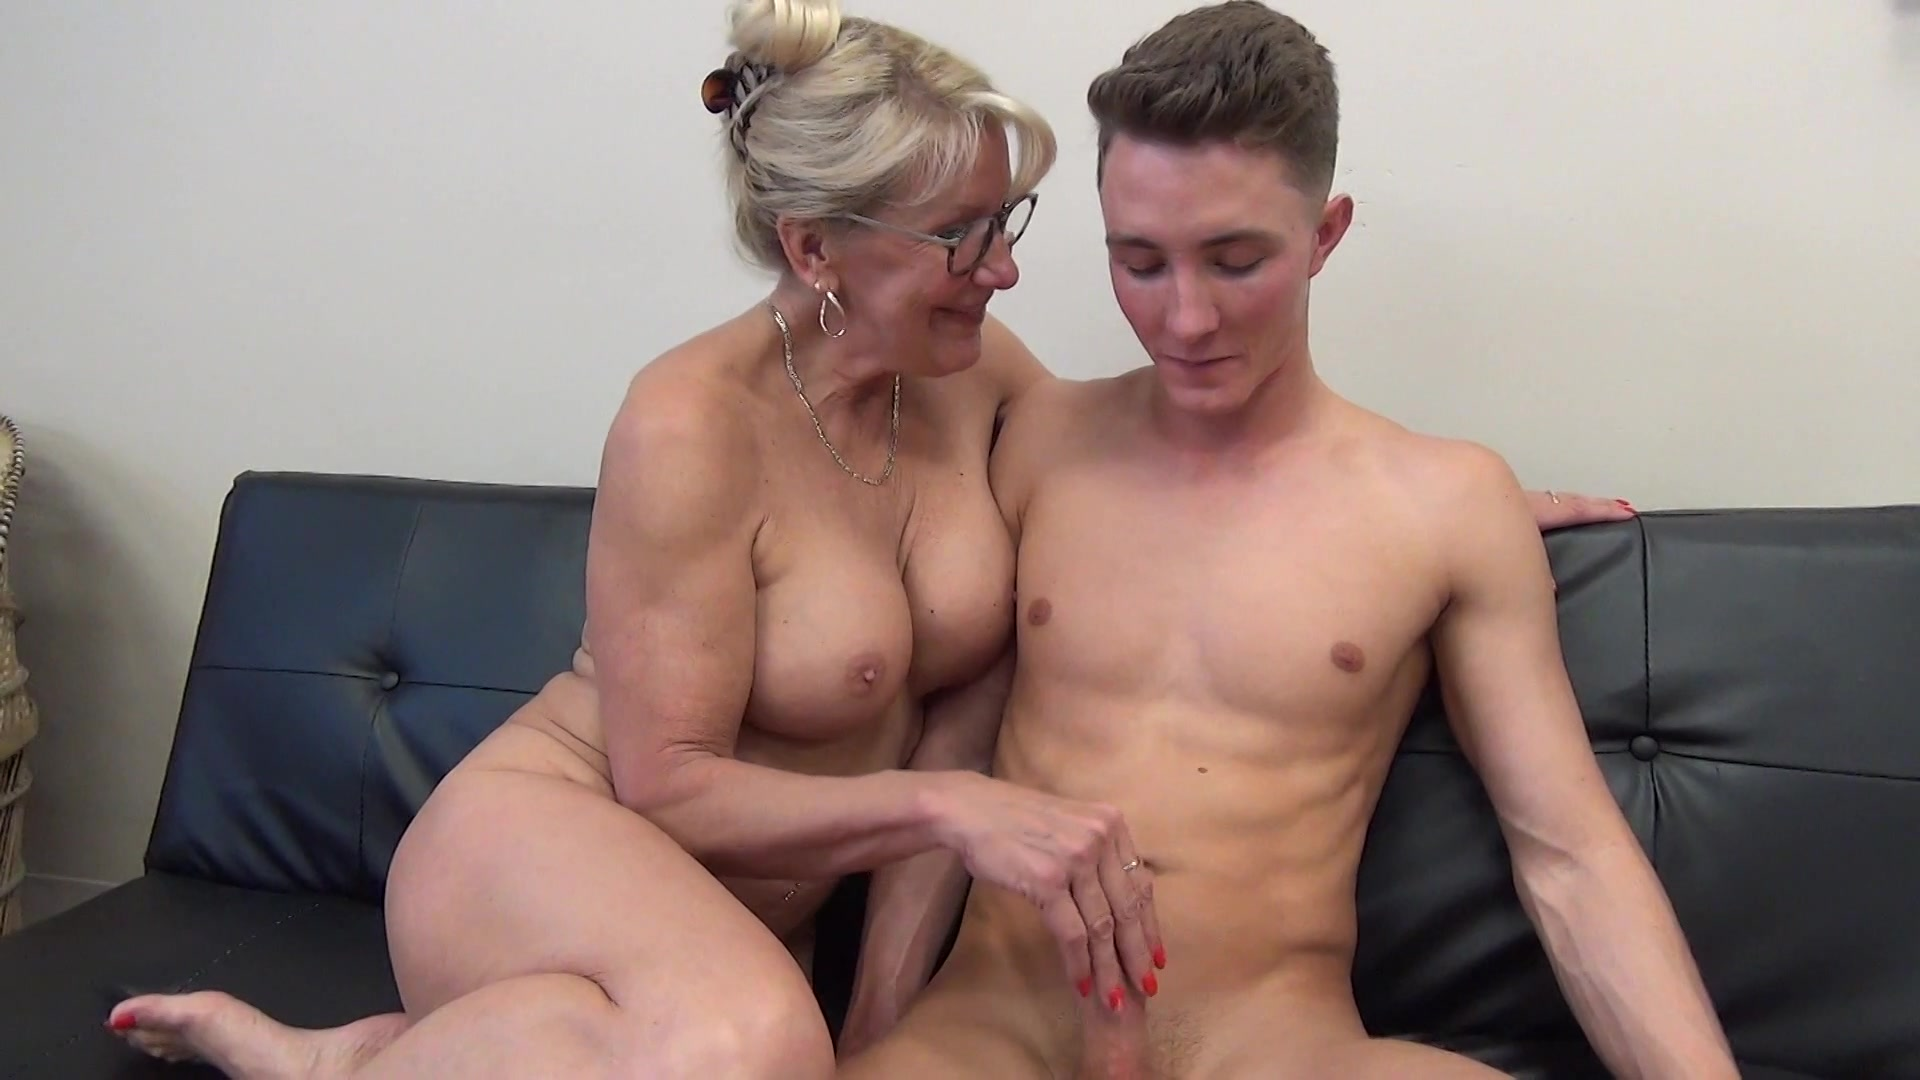 Stream Mom Son Pov Fuck Galery Pics Hot Explicit Mom Son Pov